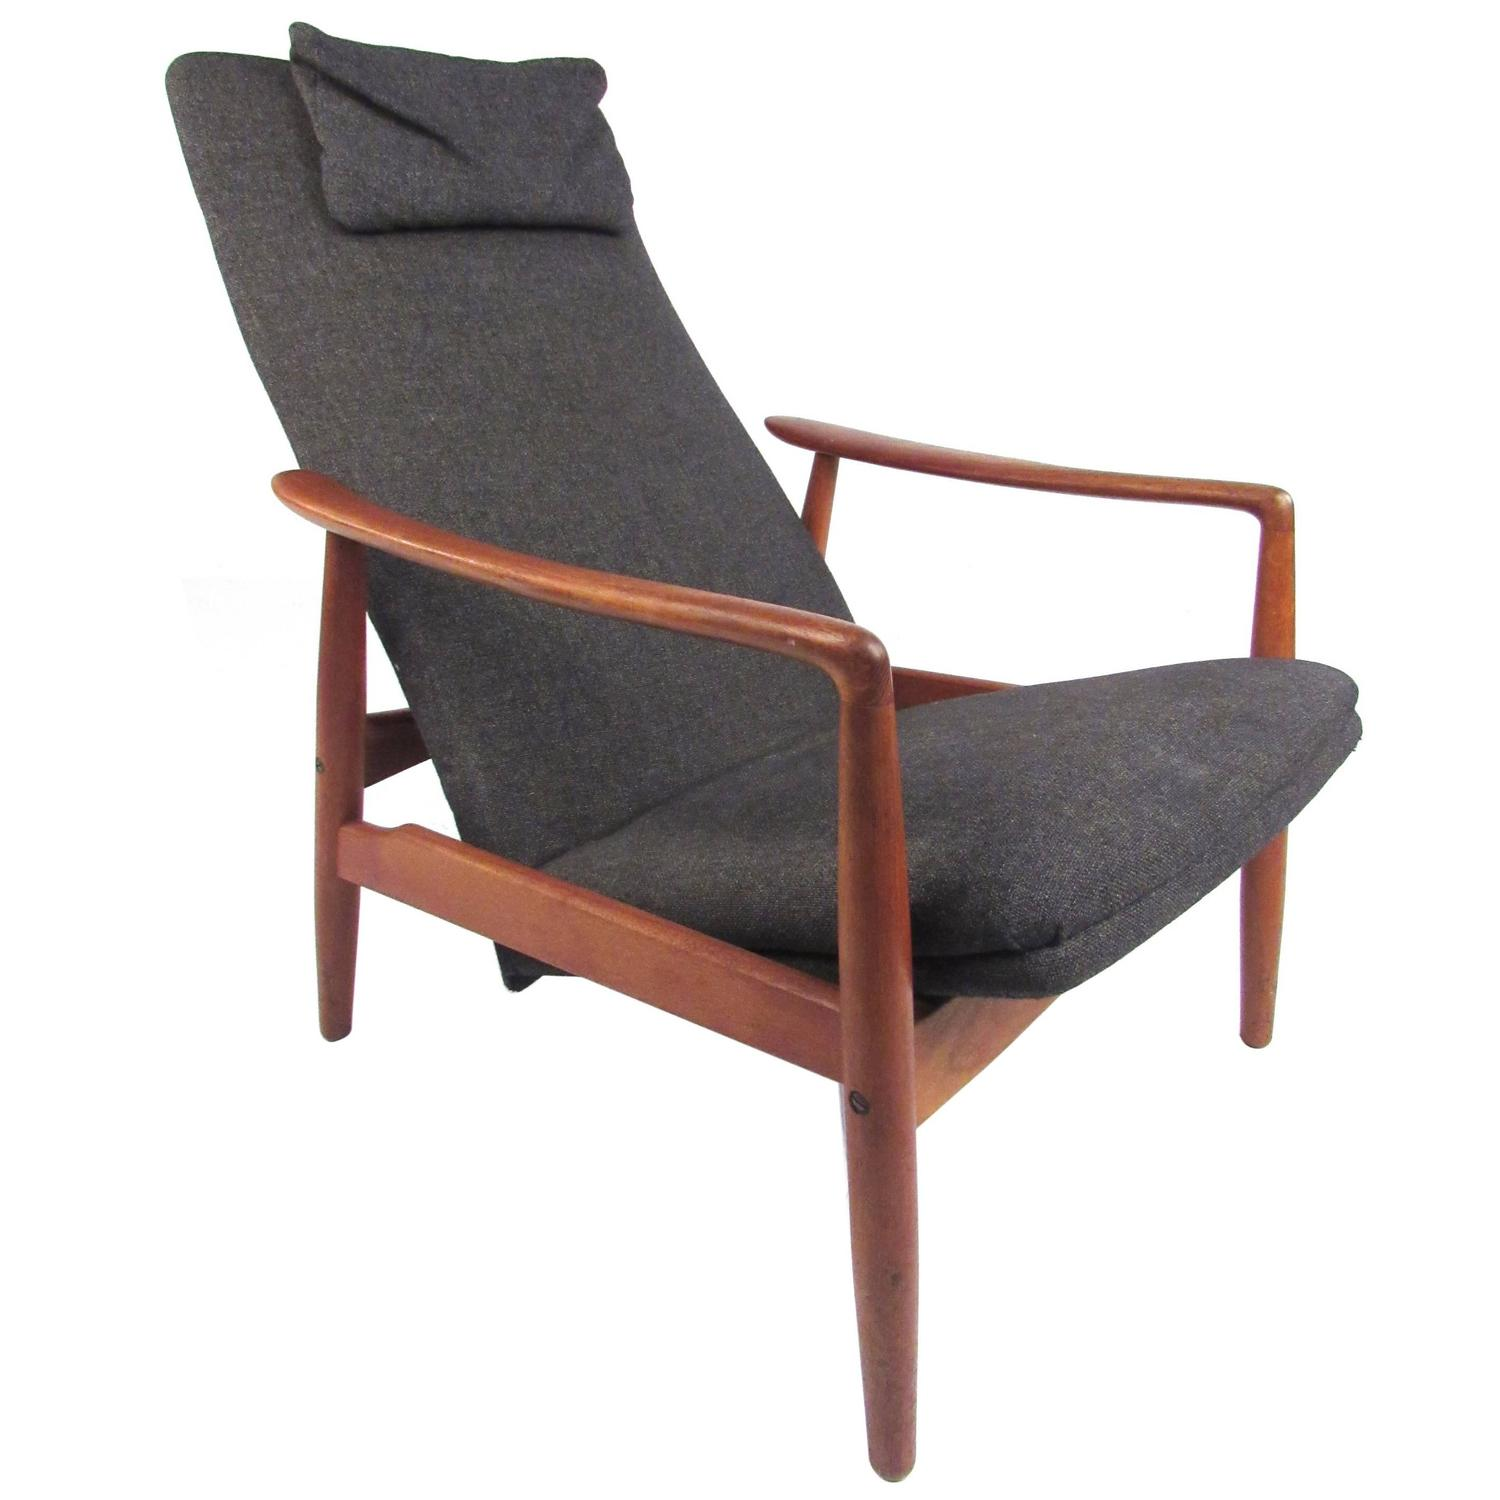 Scandinavian Modern Teak High Back Lounge Chair For Sale At 1stdibs